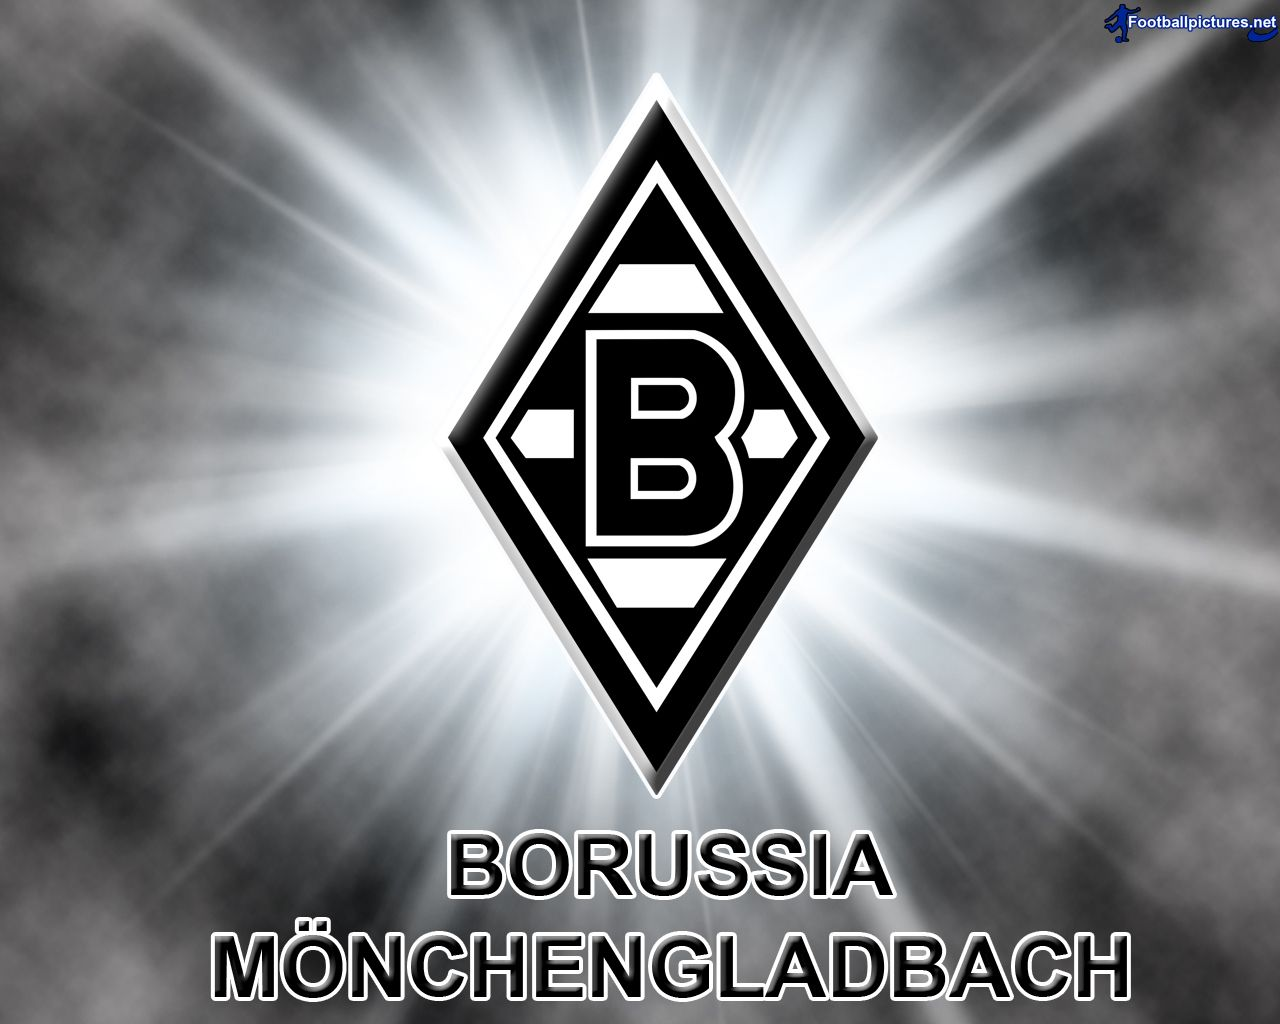 Super Borussia Monchengladbach pictures, Football Wallpapers and Photos @IJ_08